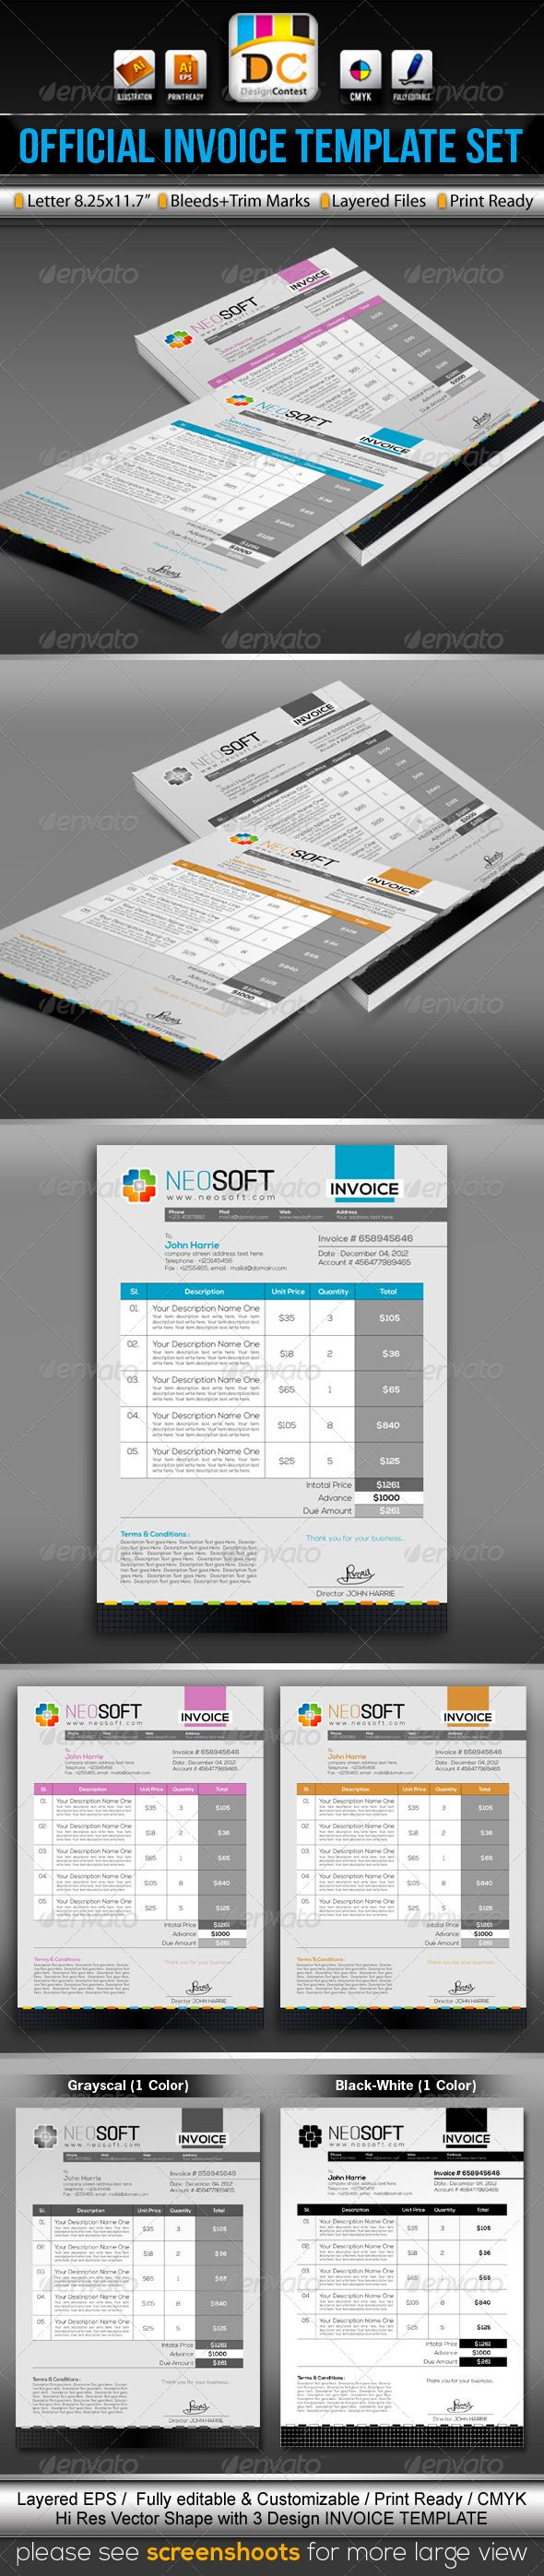 Small Business Invoice Software Free Pdf The  Best Freelance Invoice Template Ideas On Pinterest  Recipient Created Tax Invoice with Self Employed Invoice Template Uk Neosoftofficial Invoicecash Memo Template Set  Vector Eps Green Id  House Cleaning Invoice Word